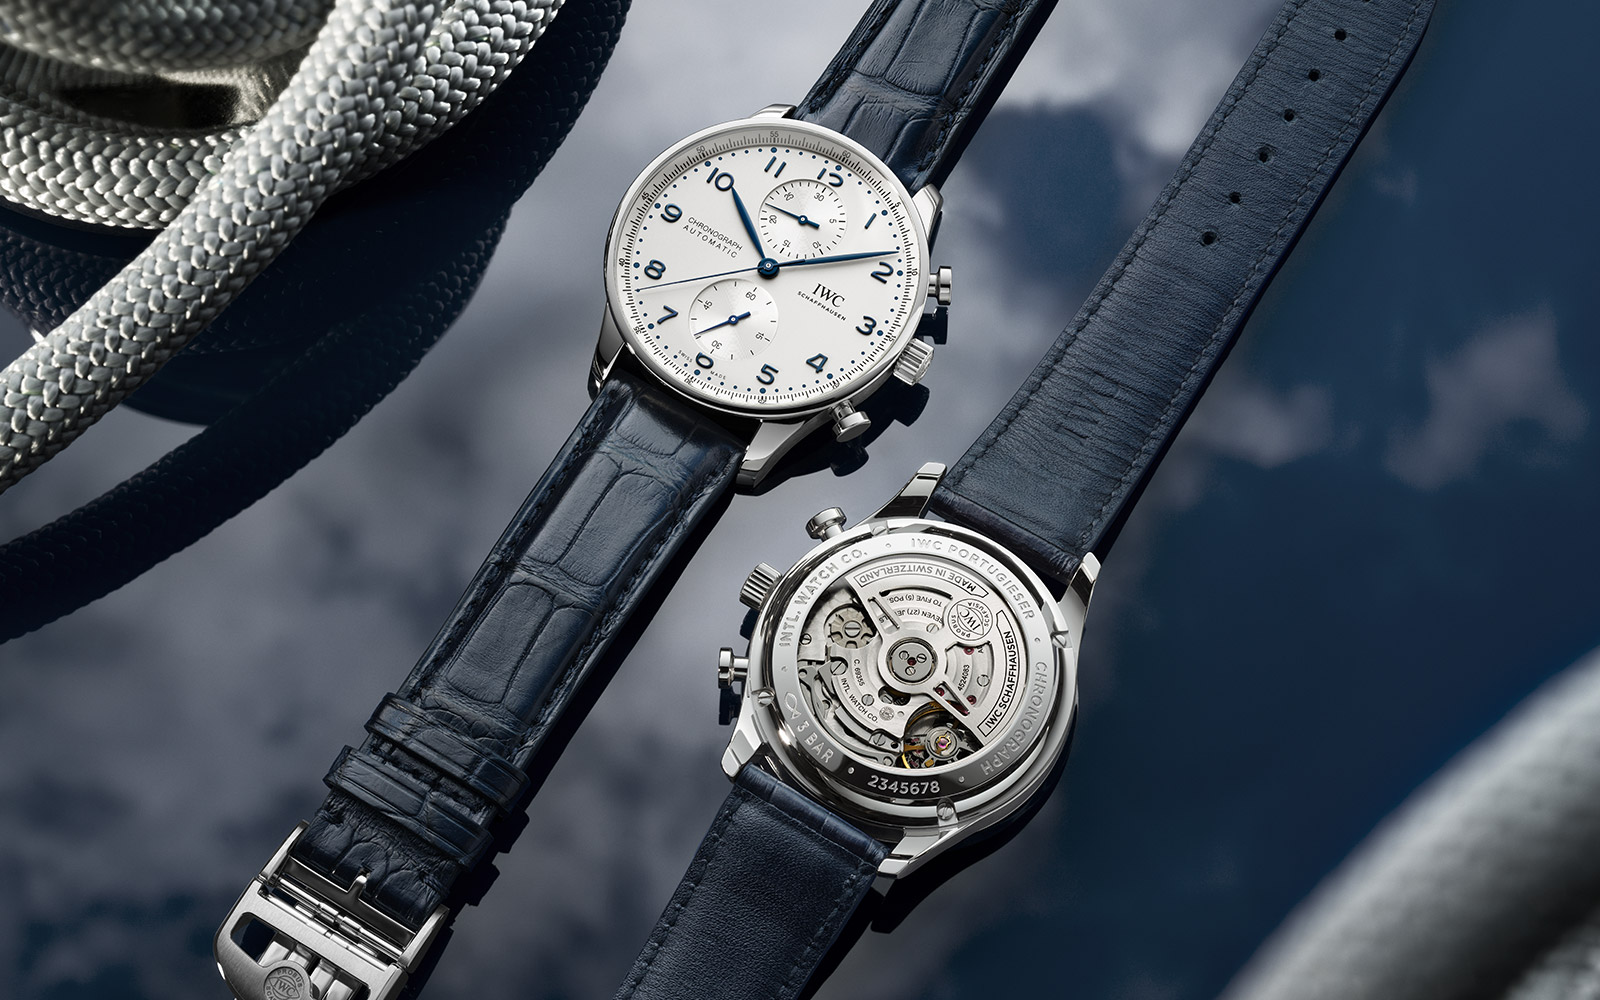 PORTUGIESER CHRONOGRAPH (Steel) - feature